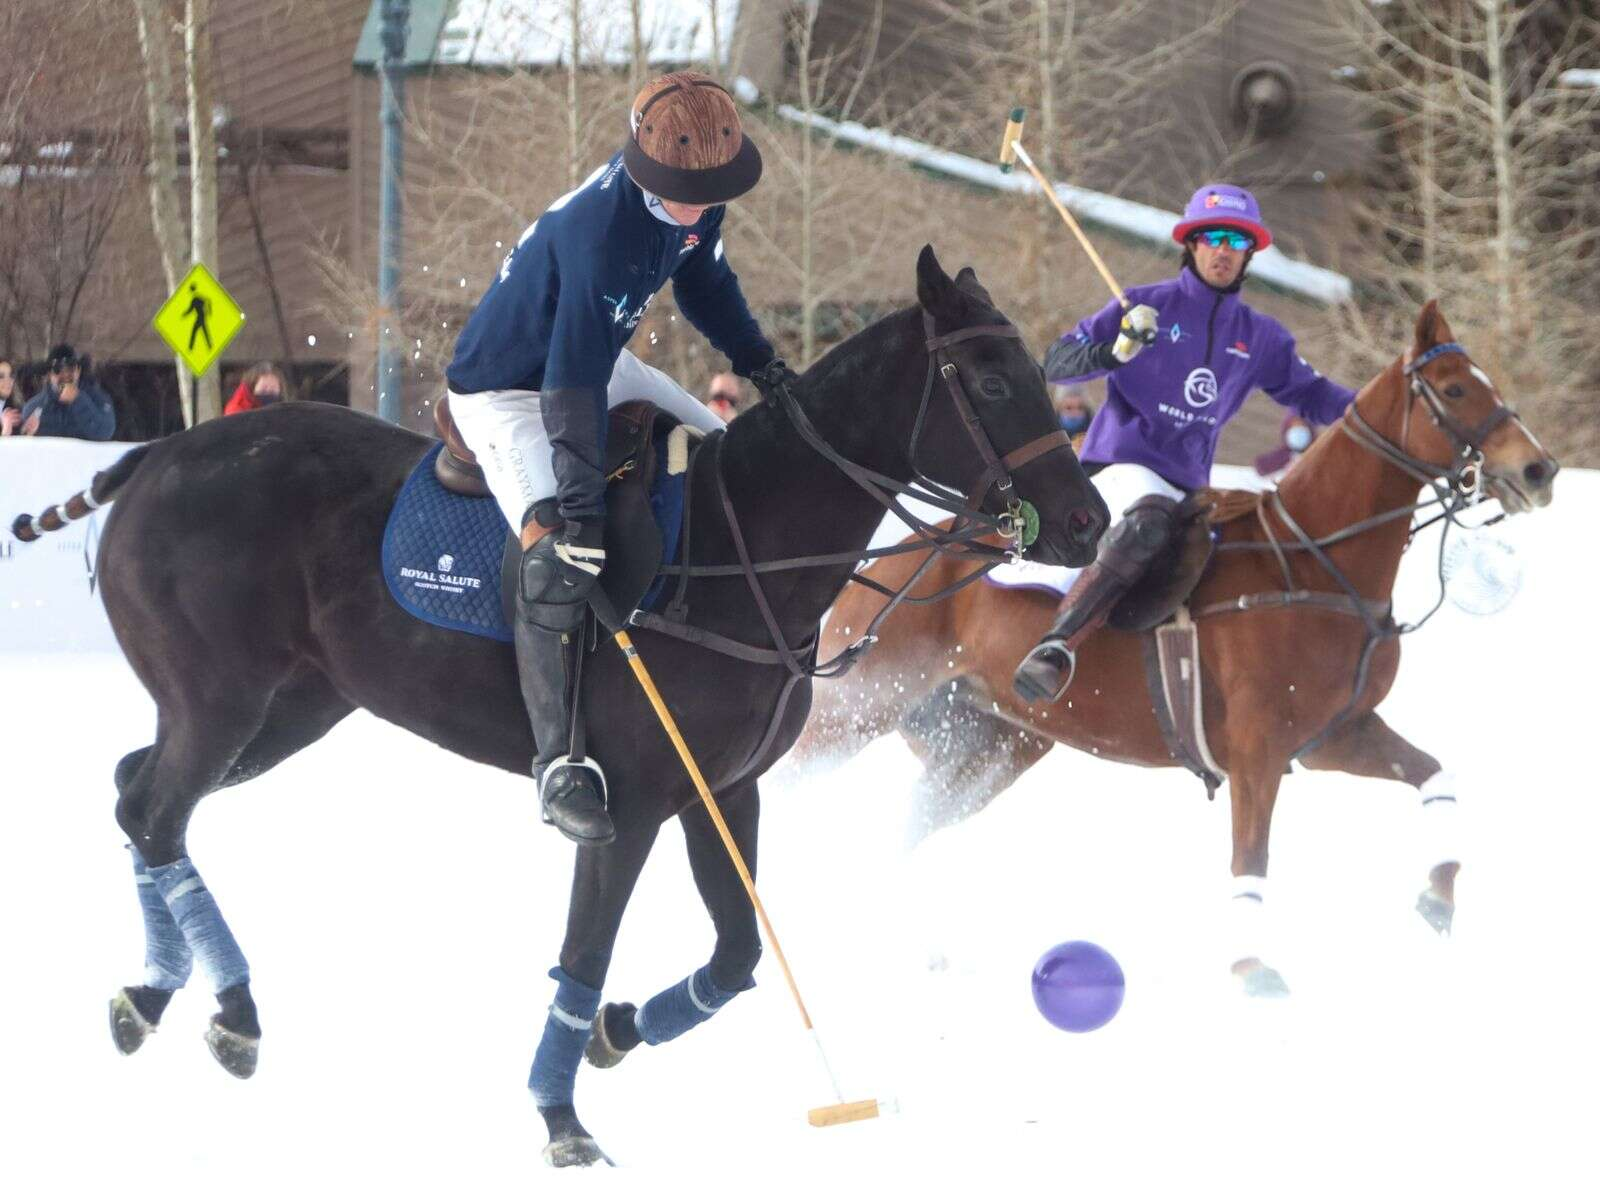 Photo from the World Snow Polo Championship on Sunday, Dec. 20, 2020, at Rio Grande Park in Aspen. Photo by Austin Colbert/The Aspen Times.